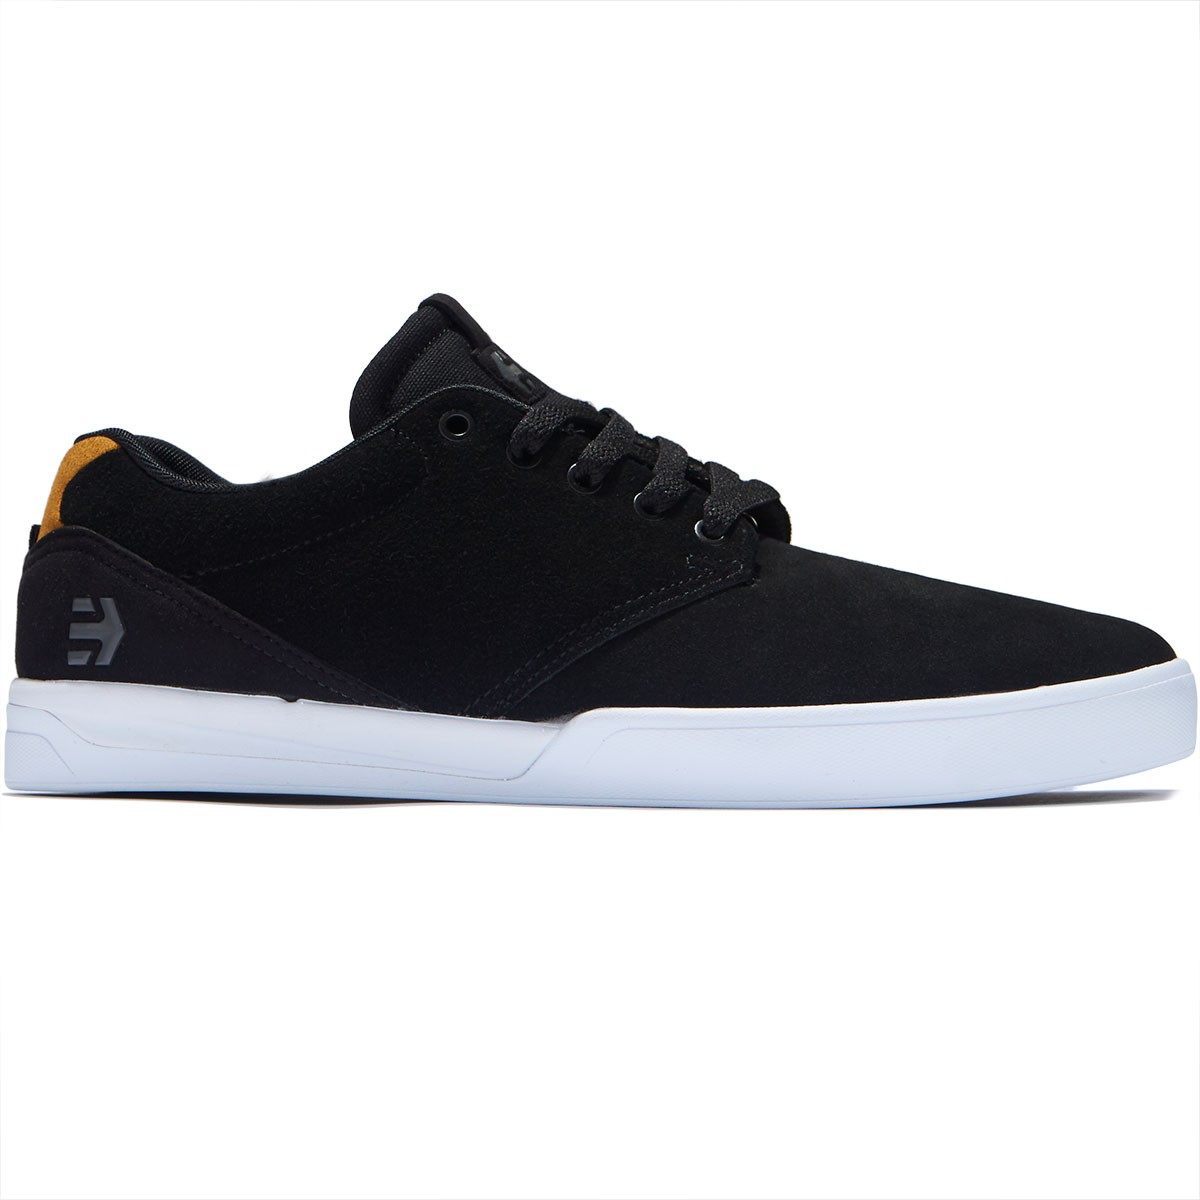 Etnies Shoes Jameson XT Black Julian Davidson New FREE POST Skateboard Sneakers